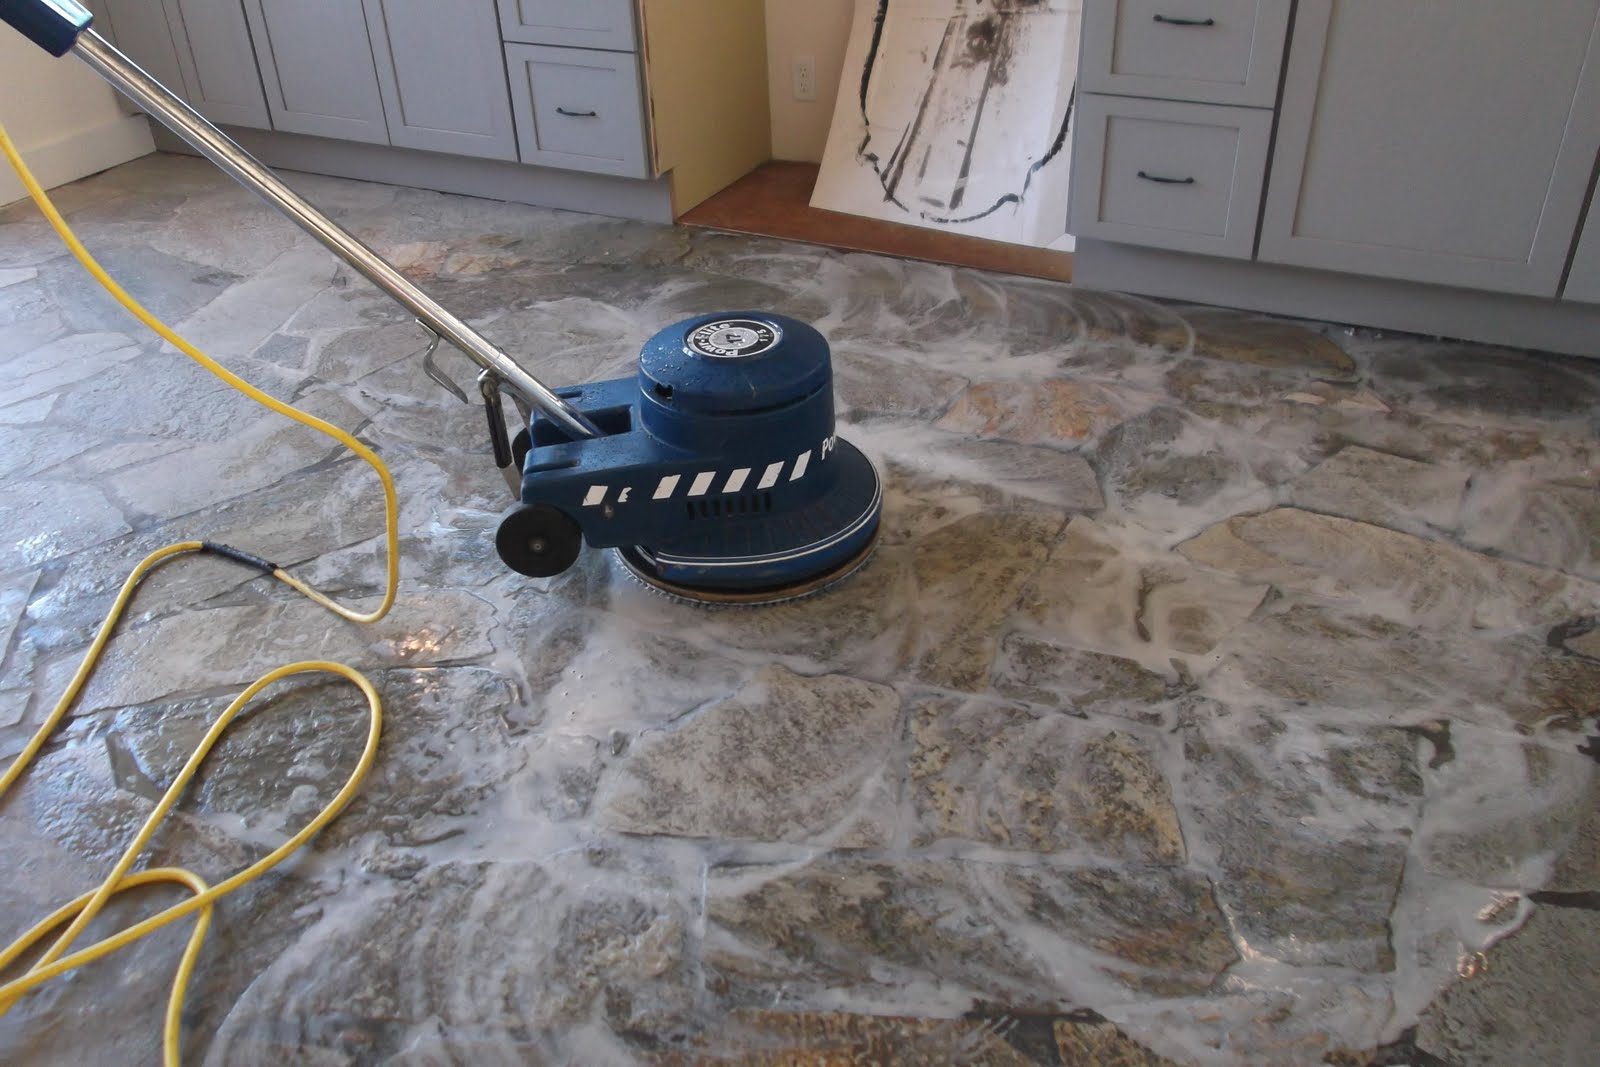 Floor Cleaning Machines Best Home Design And Decorating Ideas